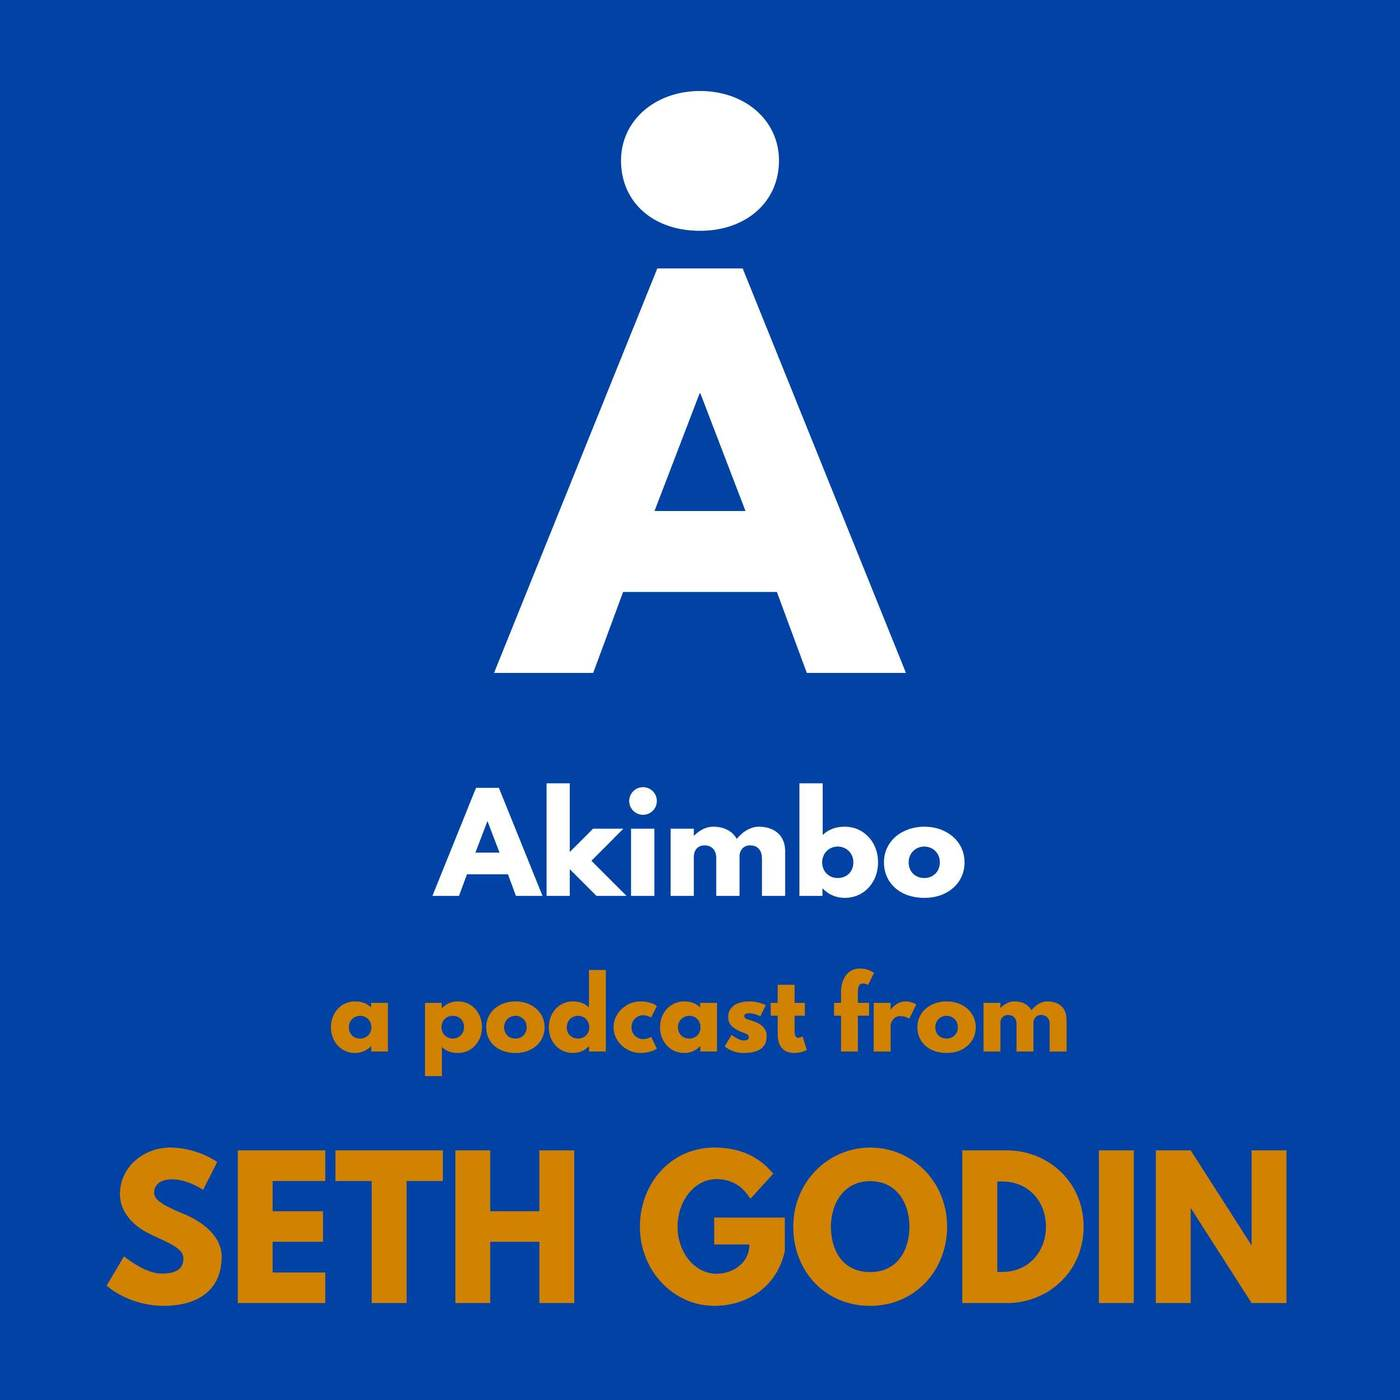 Akimbo business podcast